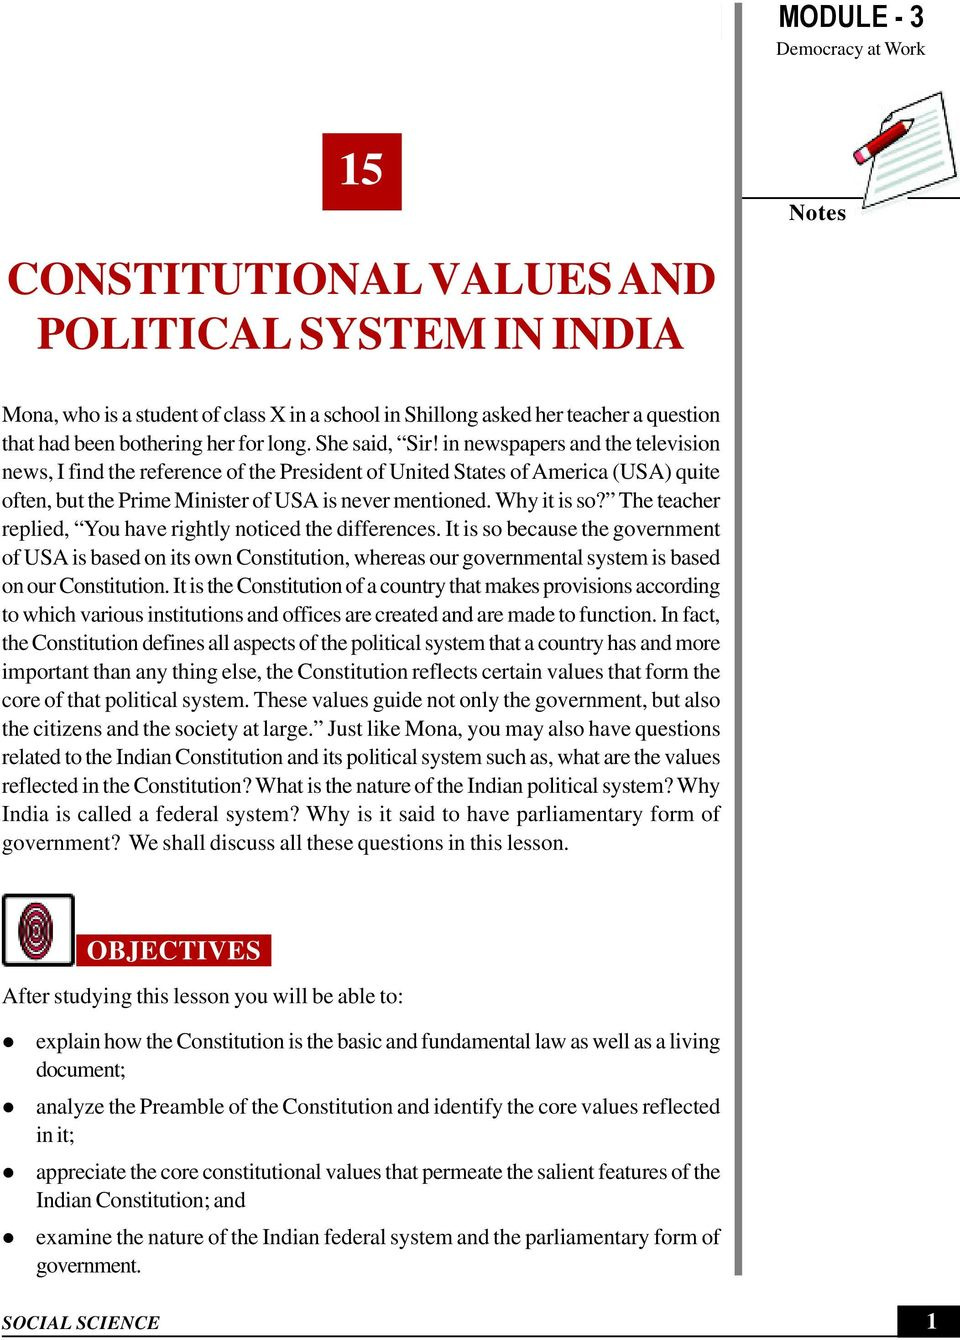 features of indian federal system